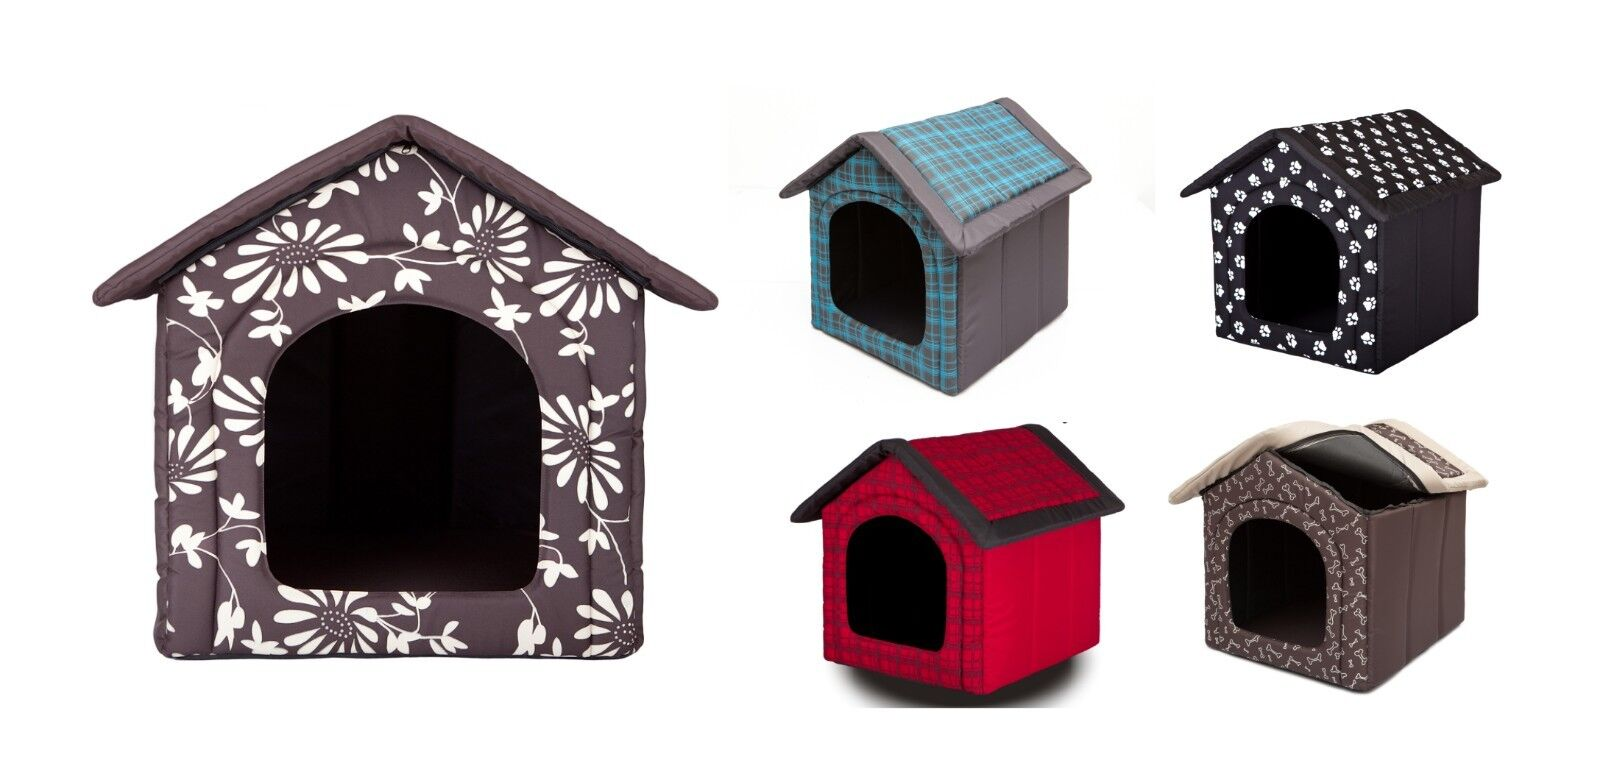 Kennel for dog house bed cat fabric tent Pet Supplies Any Colour Größe + Mattress